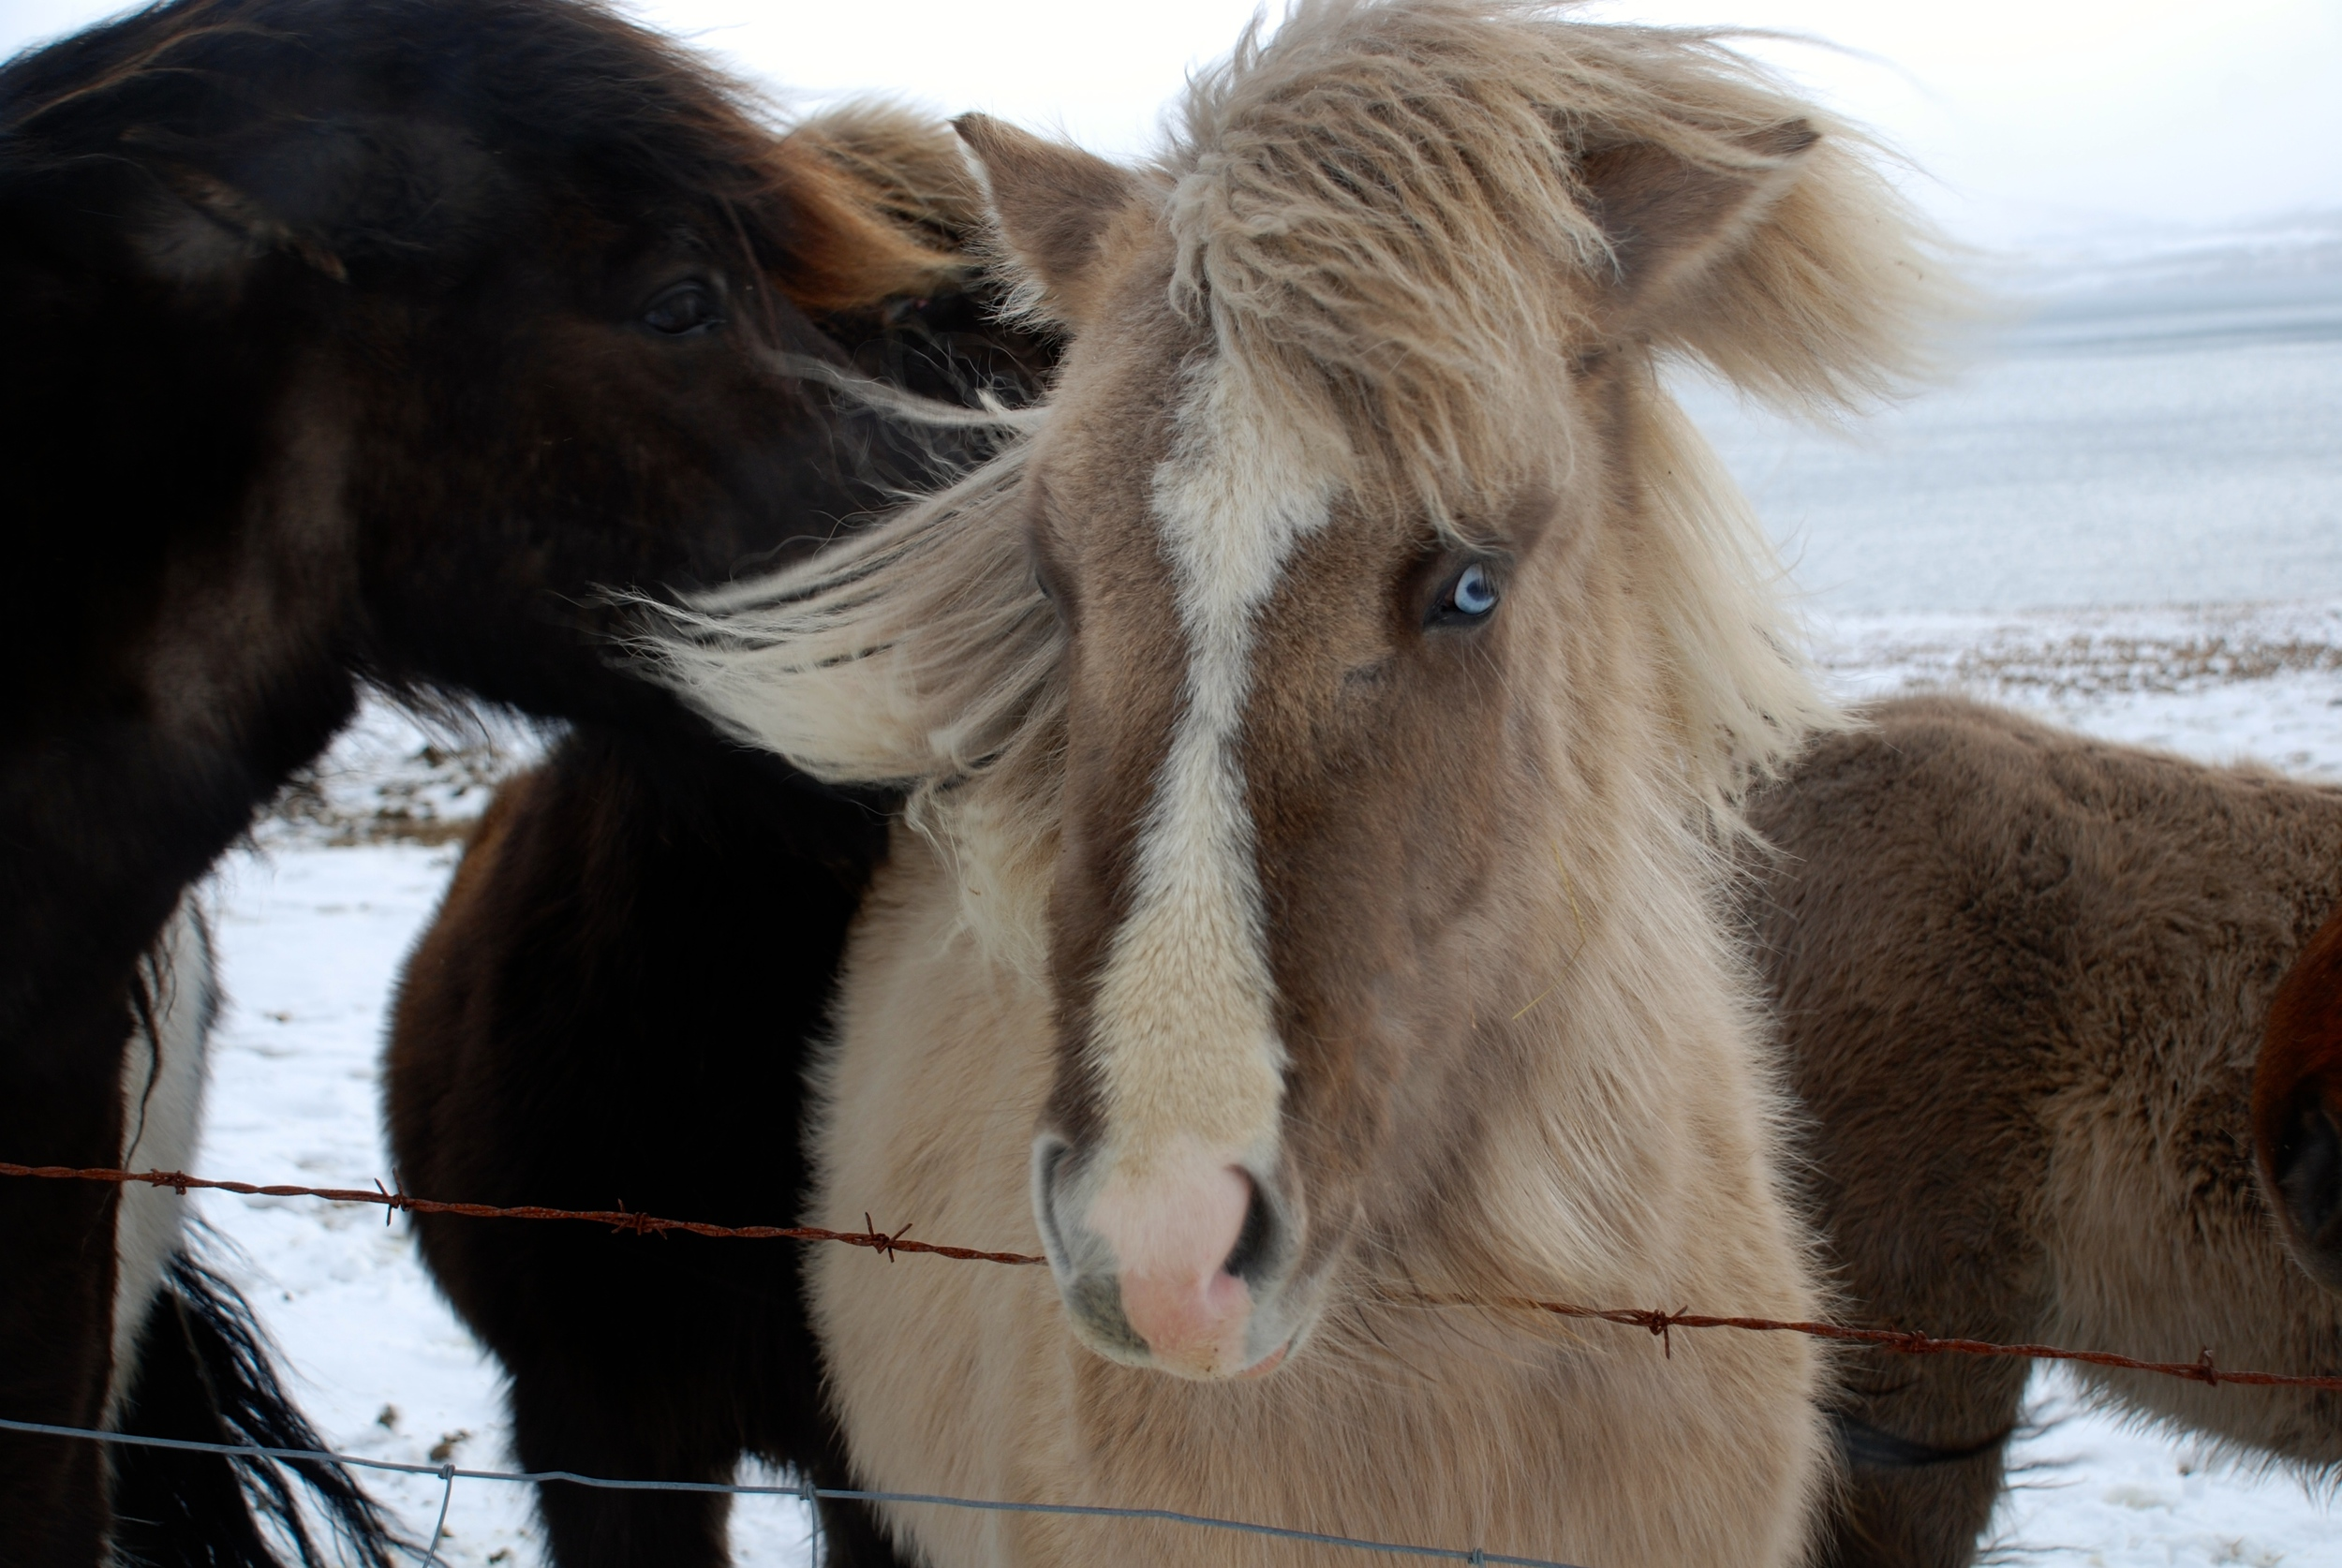 """""""There is no more sagacious animal than the Icelandic horse. He is stopped by neither snow, nor storm, nor impassable roads, nor rocks, glaciers, or anything. He is courageous, sober, and surefooted. He never makes a false step, never shies. If there is a river or fjord to cross (and we shall meet with many) you will see him plunge in at once, just as if he were amphibious, and gain the opposite bank."""" ~ Jules Verne, Journey to the Center of the Earth"""